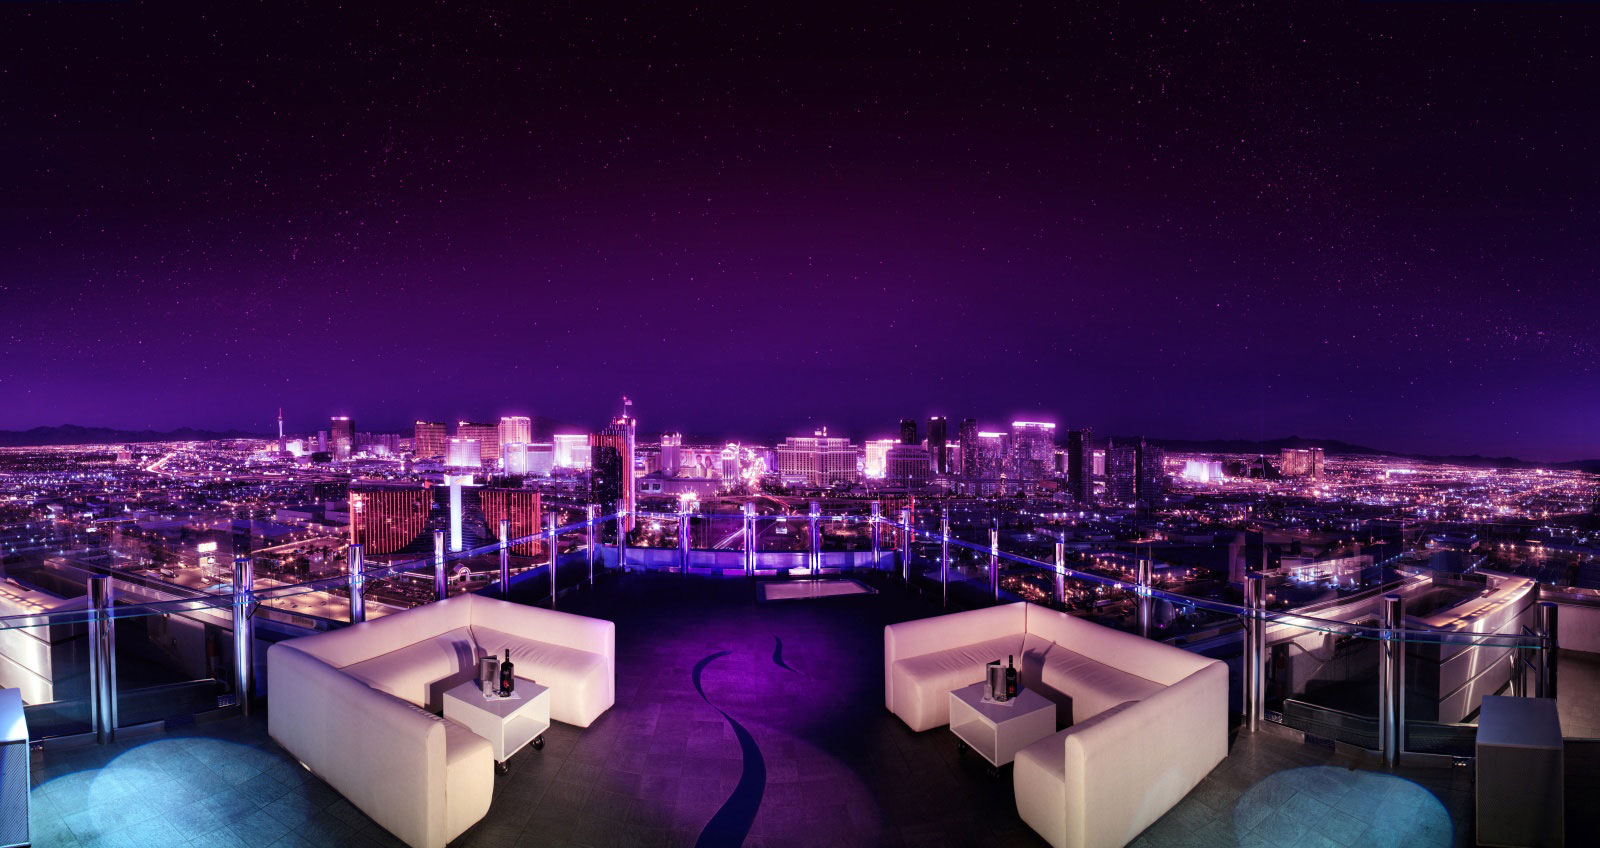 Palms place casino and spa